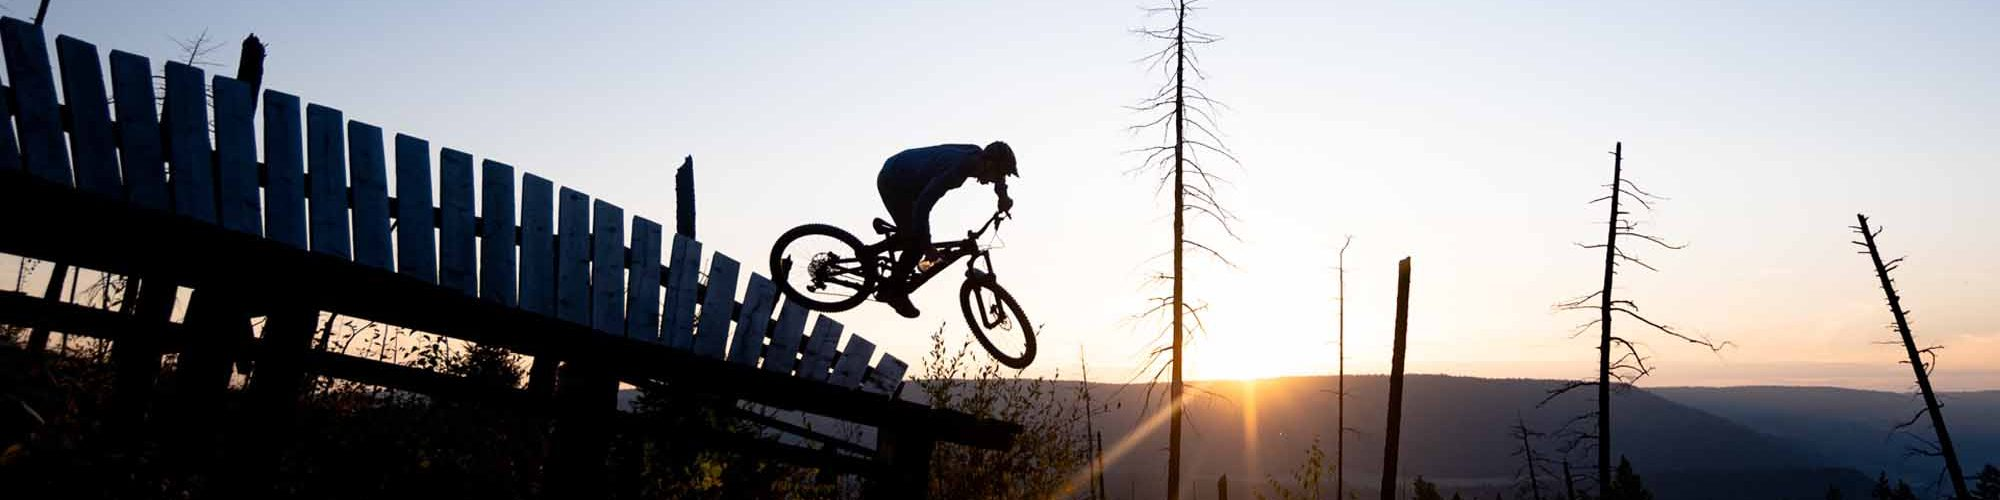 First-Journey-Trails-Indigenous-Communities-BC-Mountain-Biking-Mack-Rankin-photo-Vince-Ready-on-The-Separator